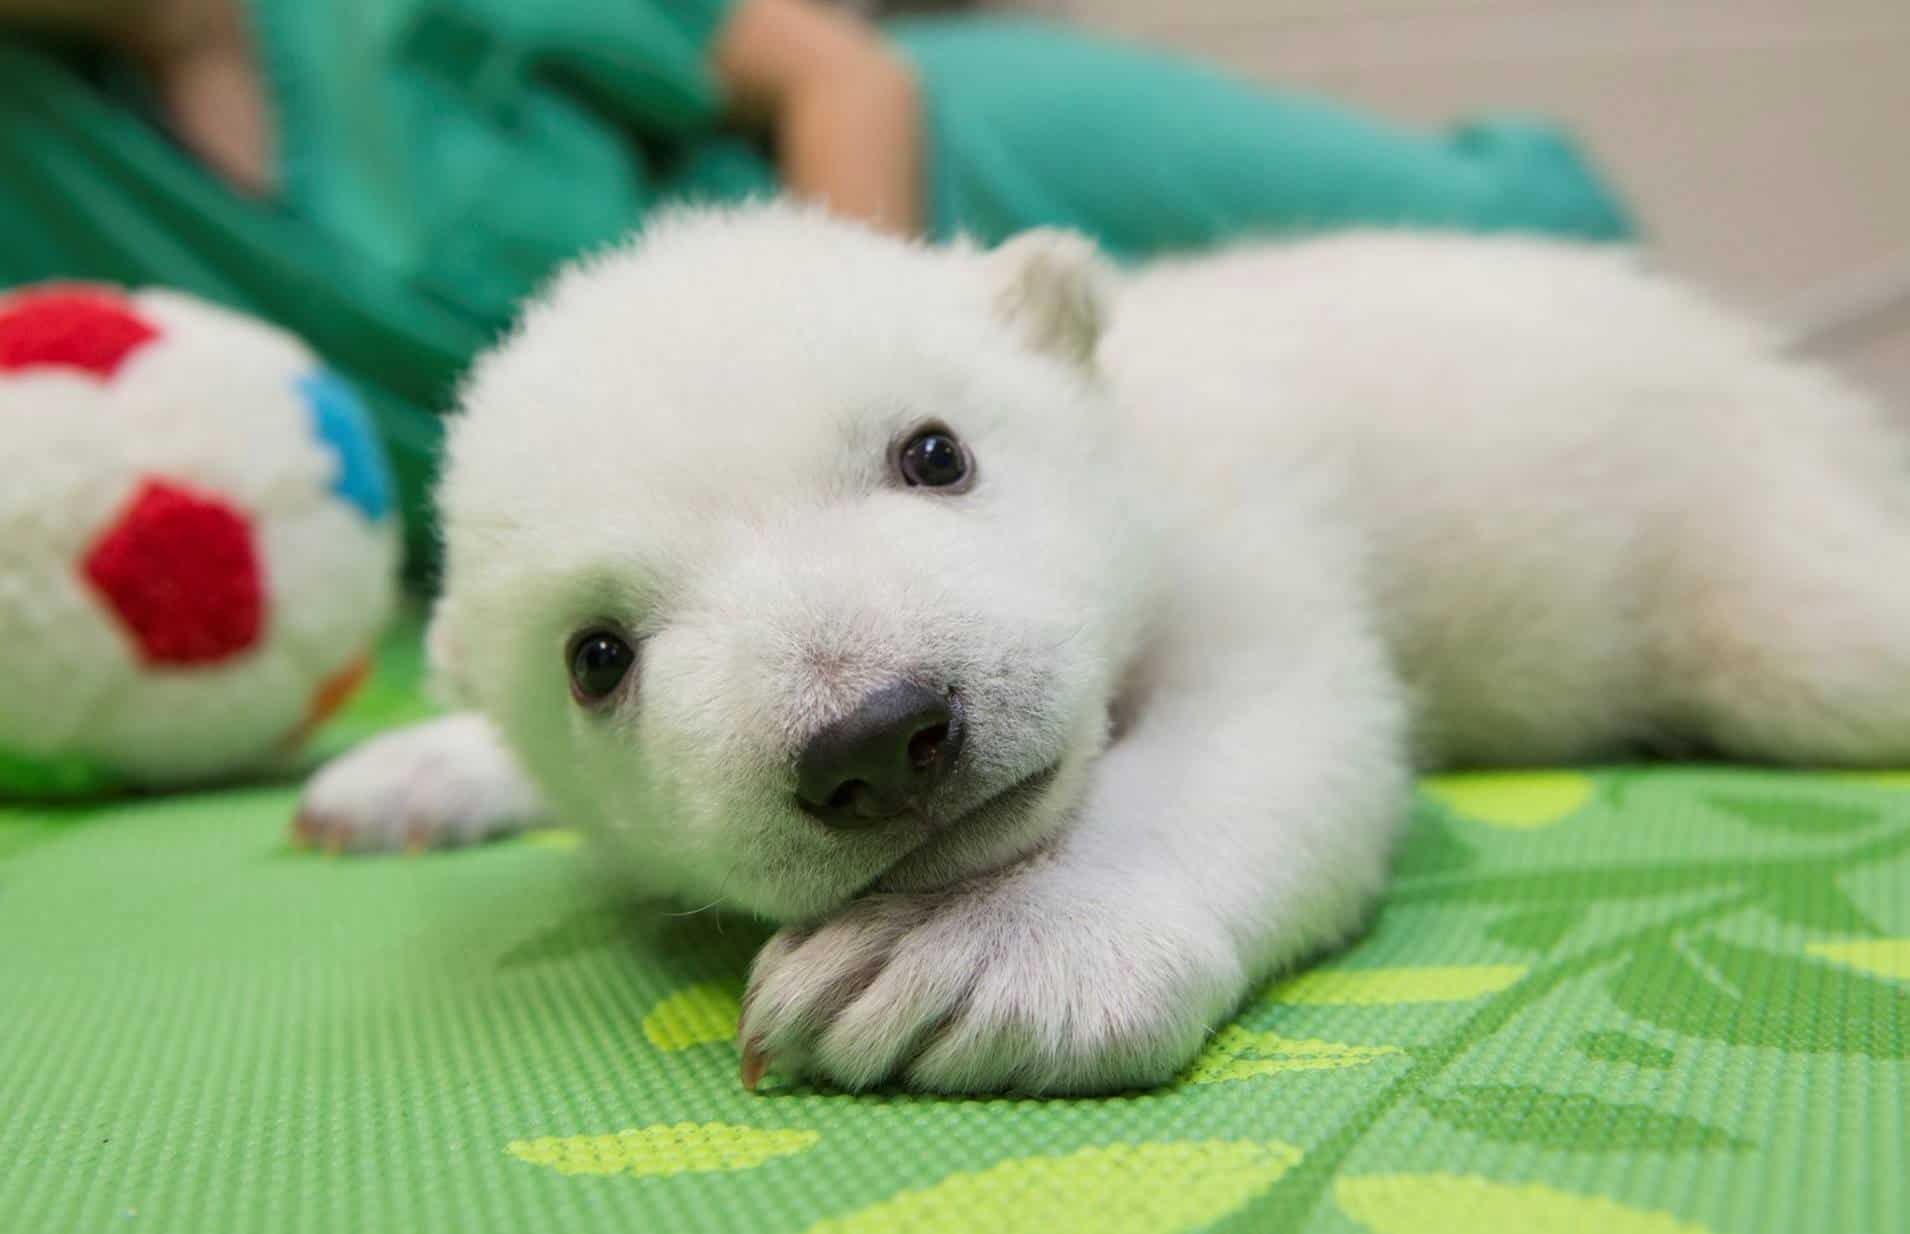 Time Lapse Video Of Adorable Baby Polar Bear Growing From 7 To 83 Days Old Awesomejelly Com